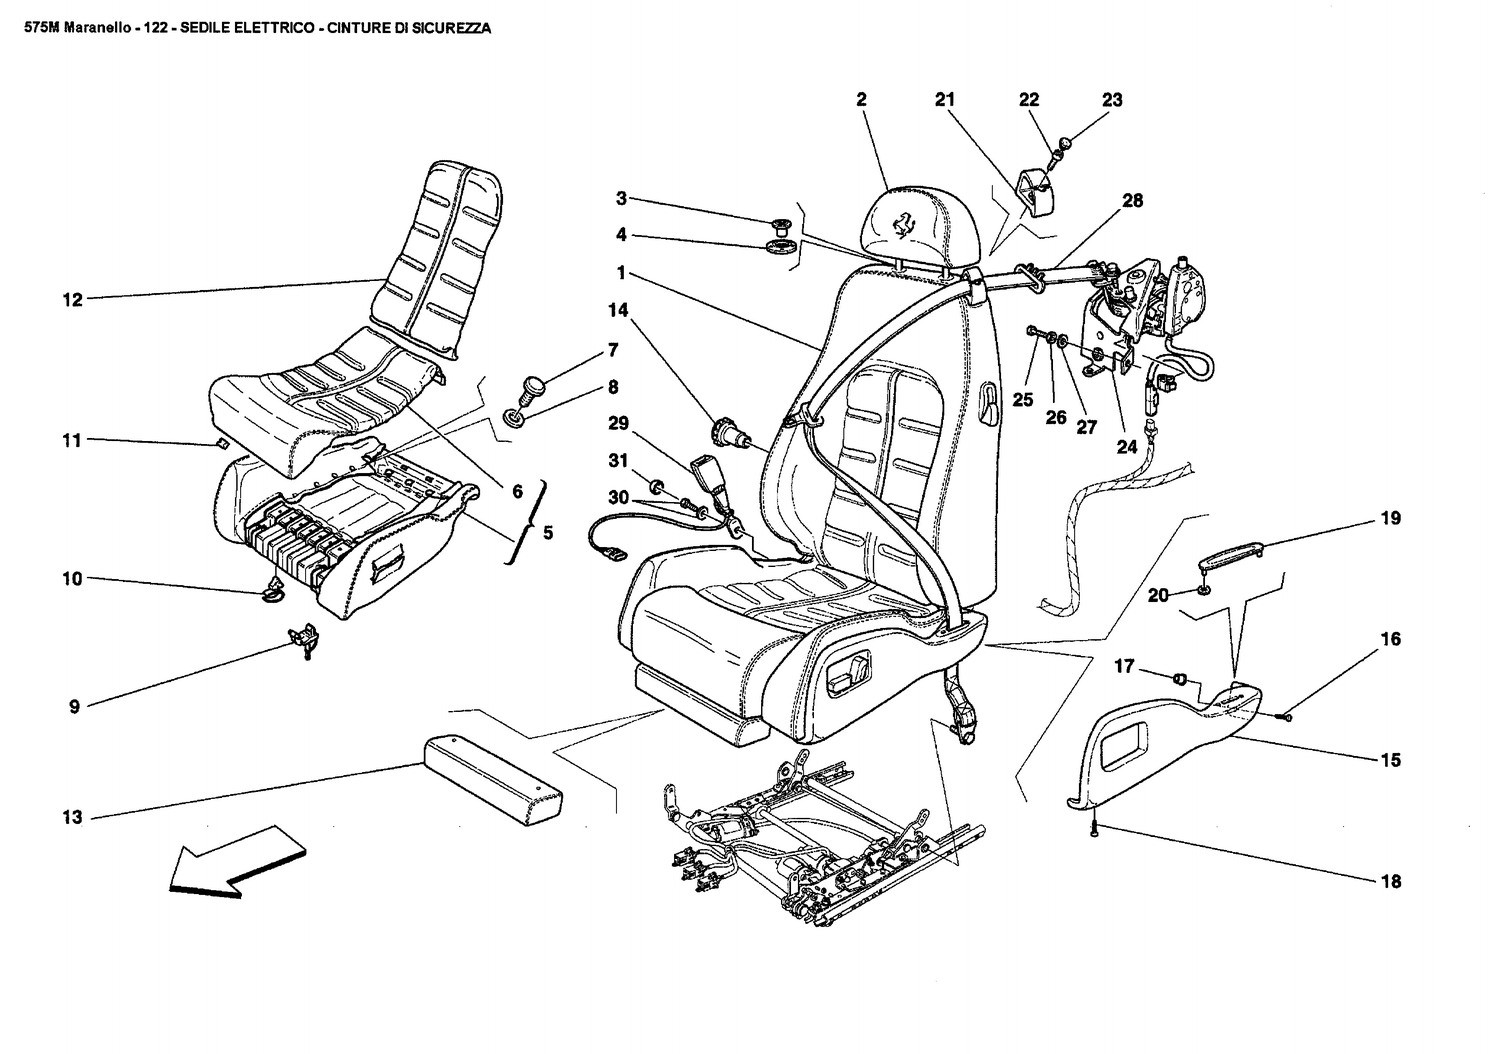 ELECTRICAL SEAT - SAFETY BELTS